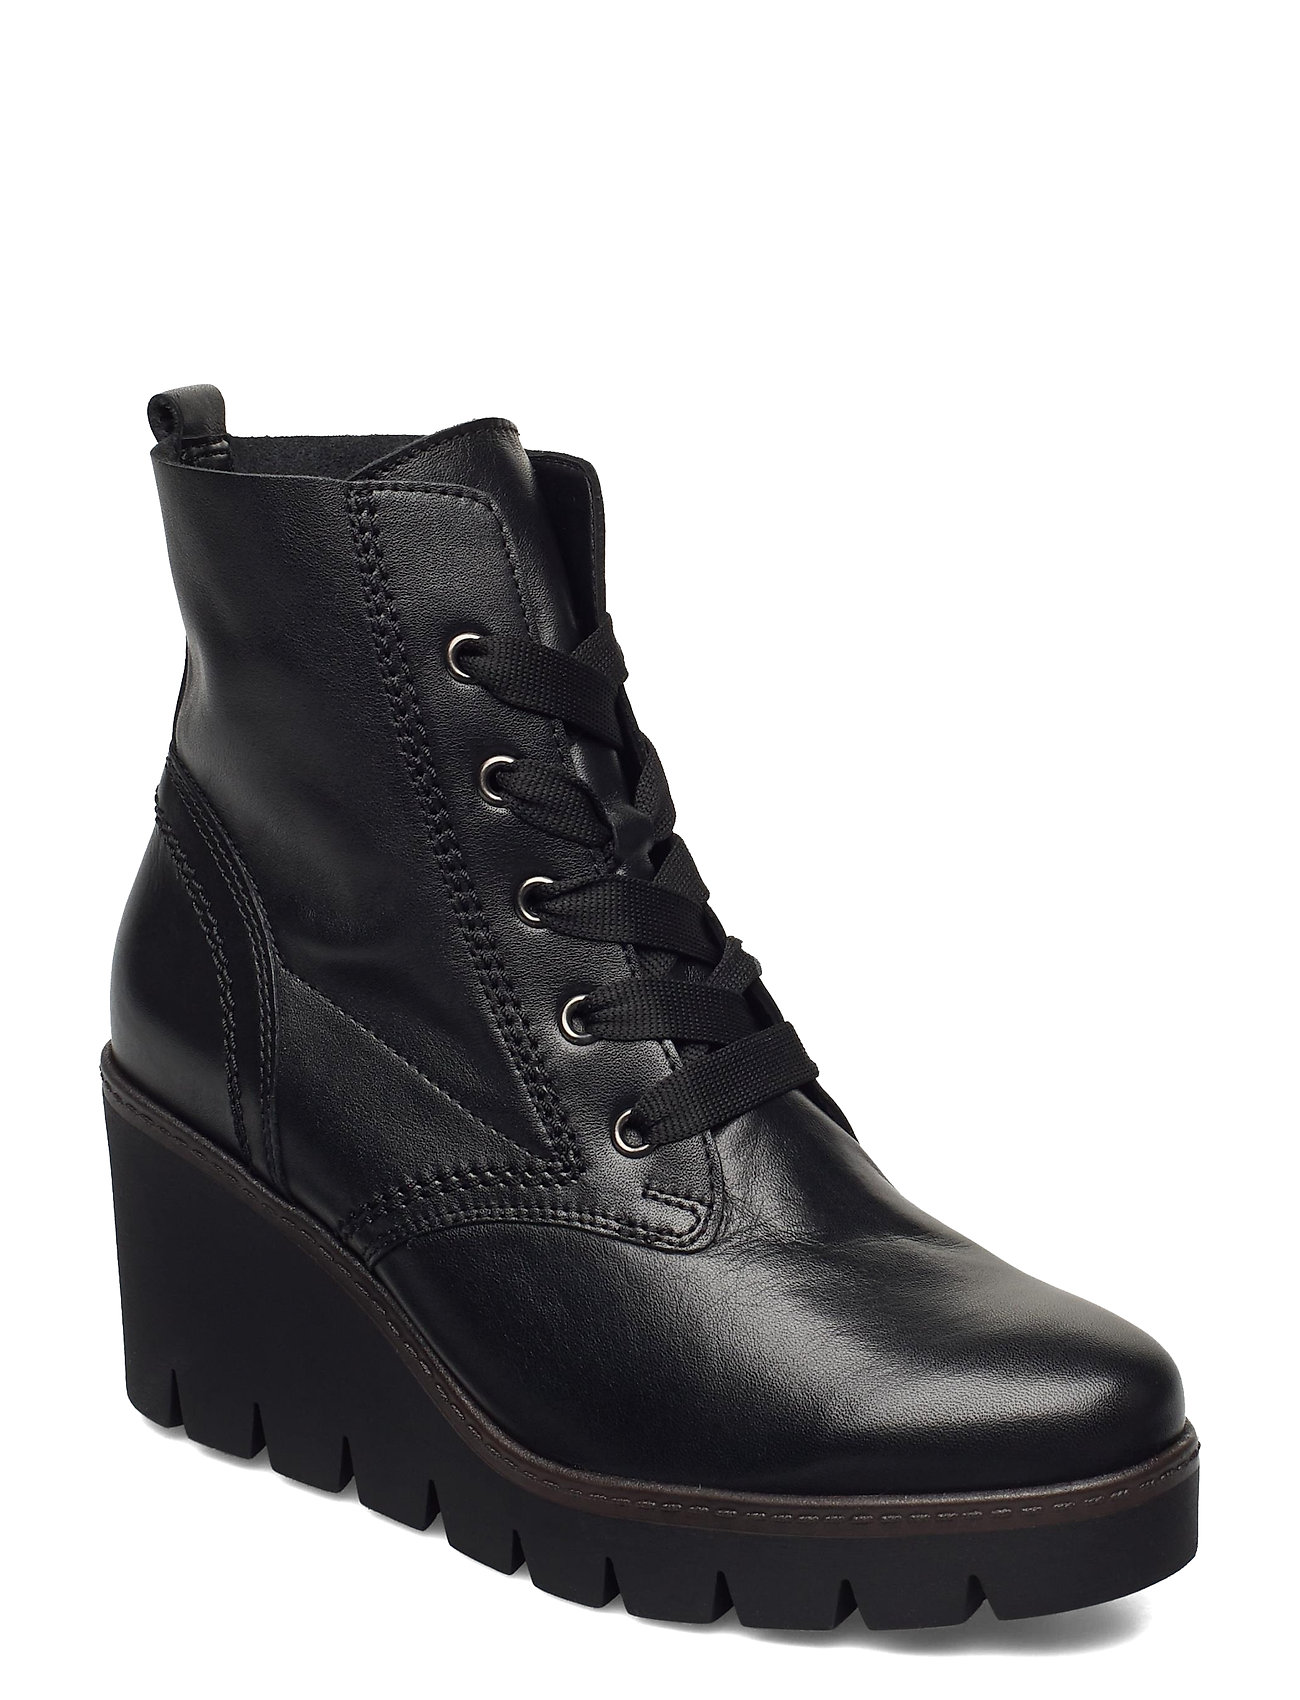 Image of Ankle Boot Shoes Boots Ankle Boots Ankle Boot - Heel Sort Gabor (3462700133)